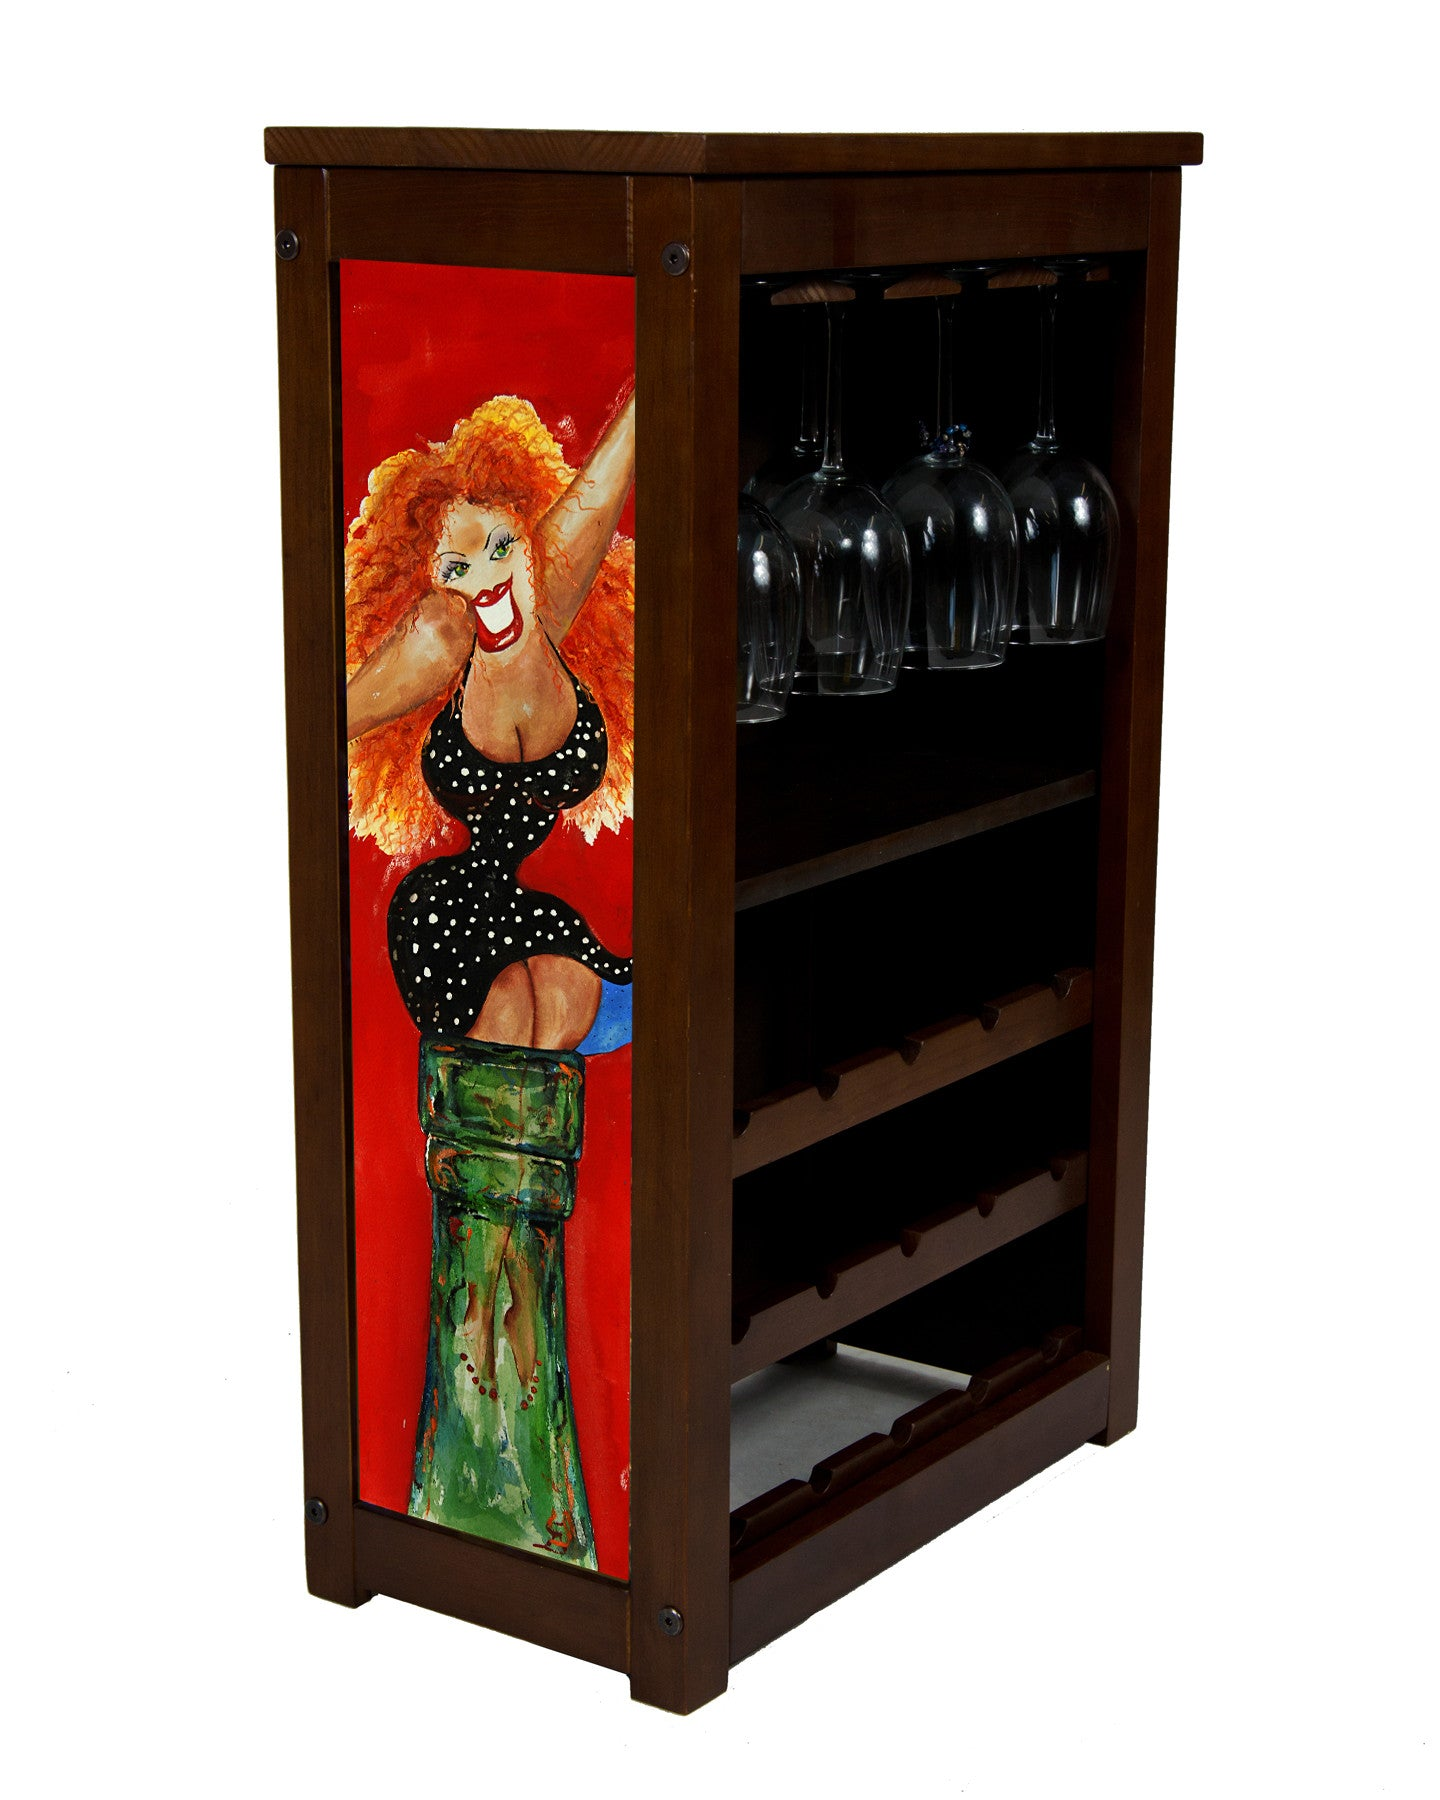 Big Red by Jill Neal on wine cabinet